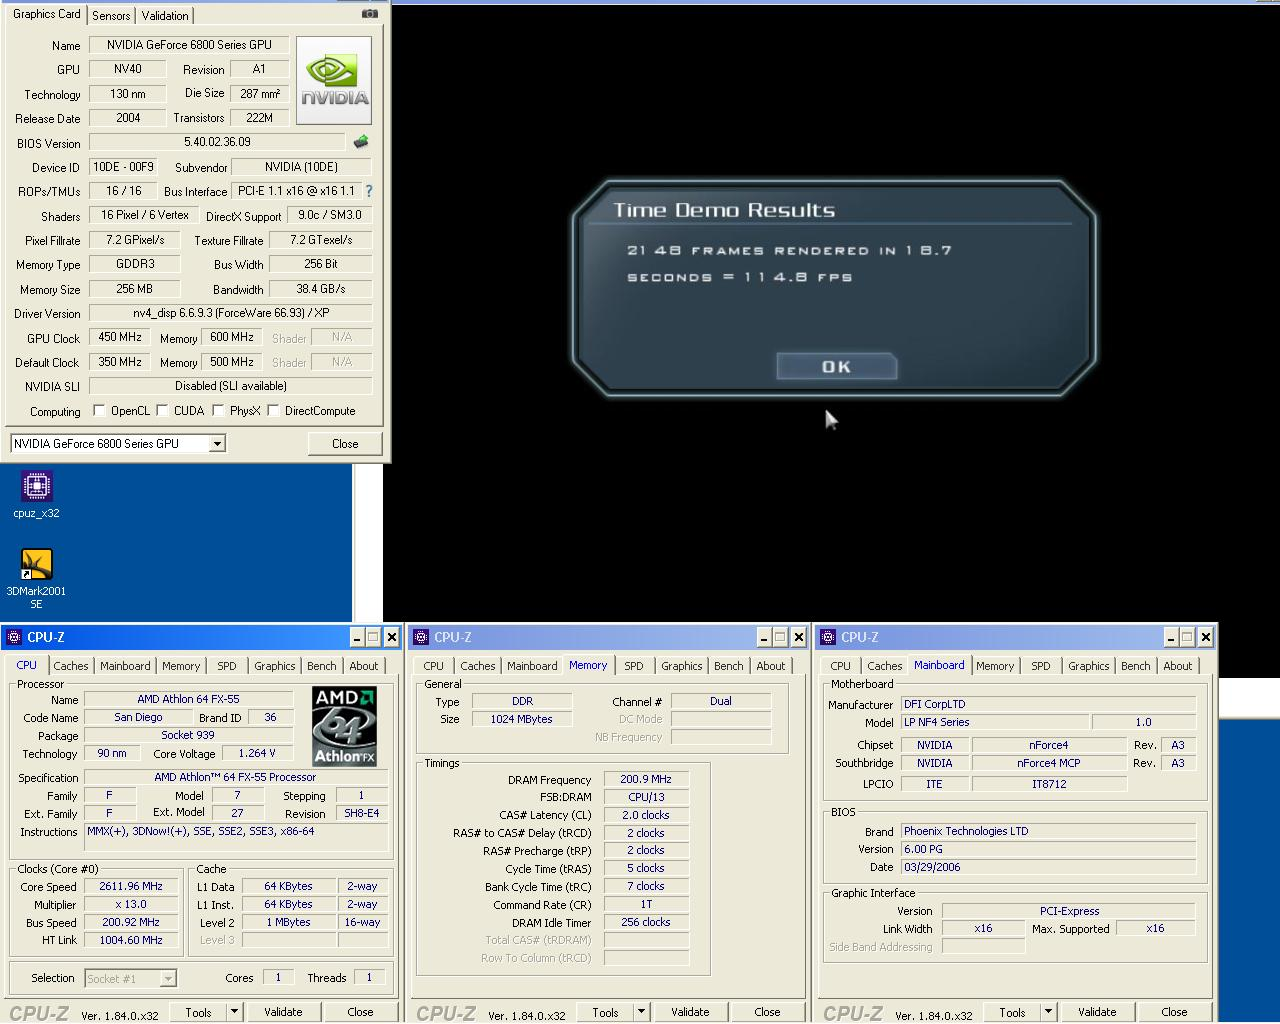 FX55 0.09 um 2x512MB DDR400 2 2 2 5 1T Geforce 6800GT 450 1200 doom3 1024 Ultra.JPG